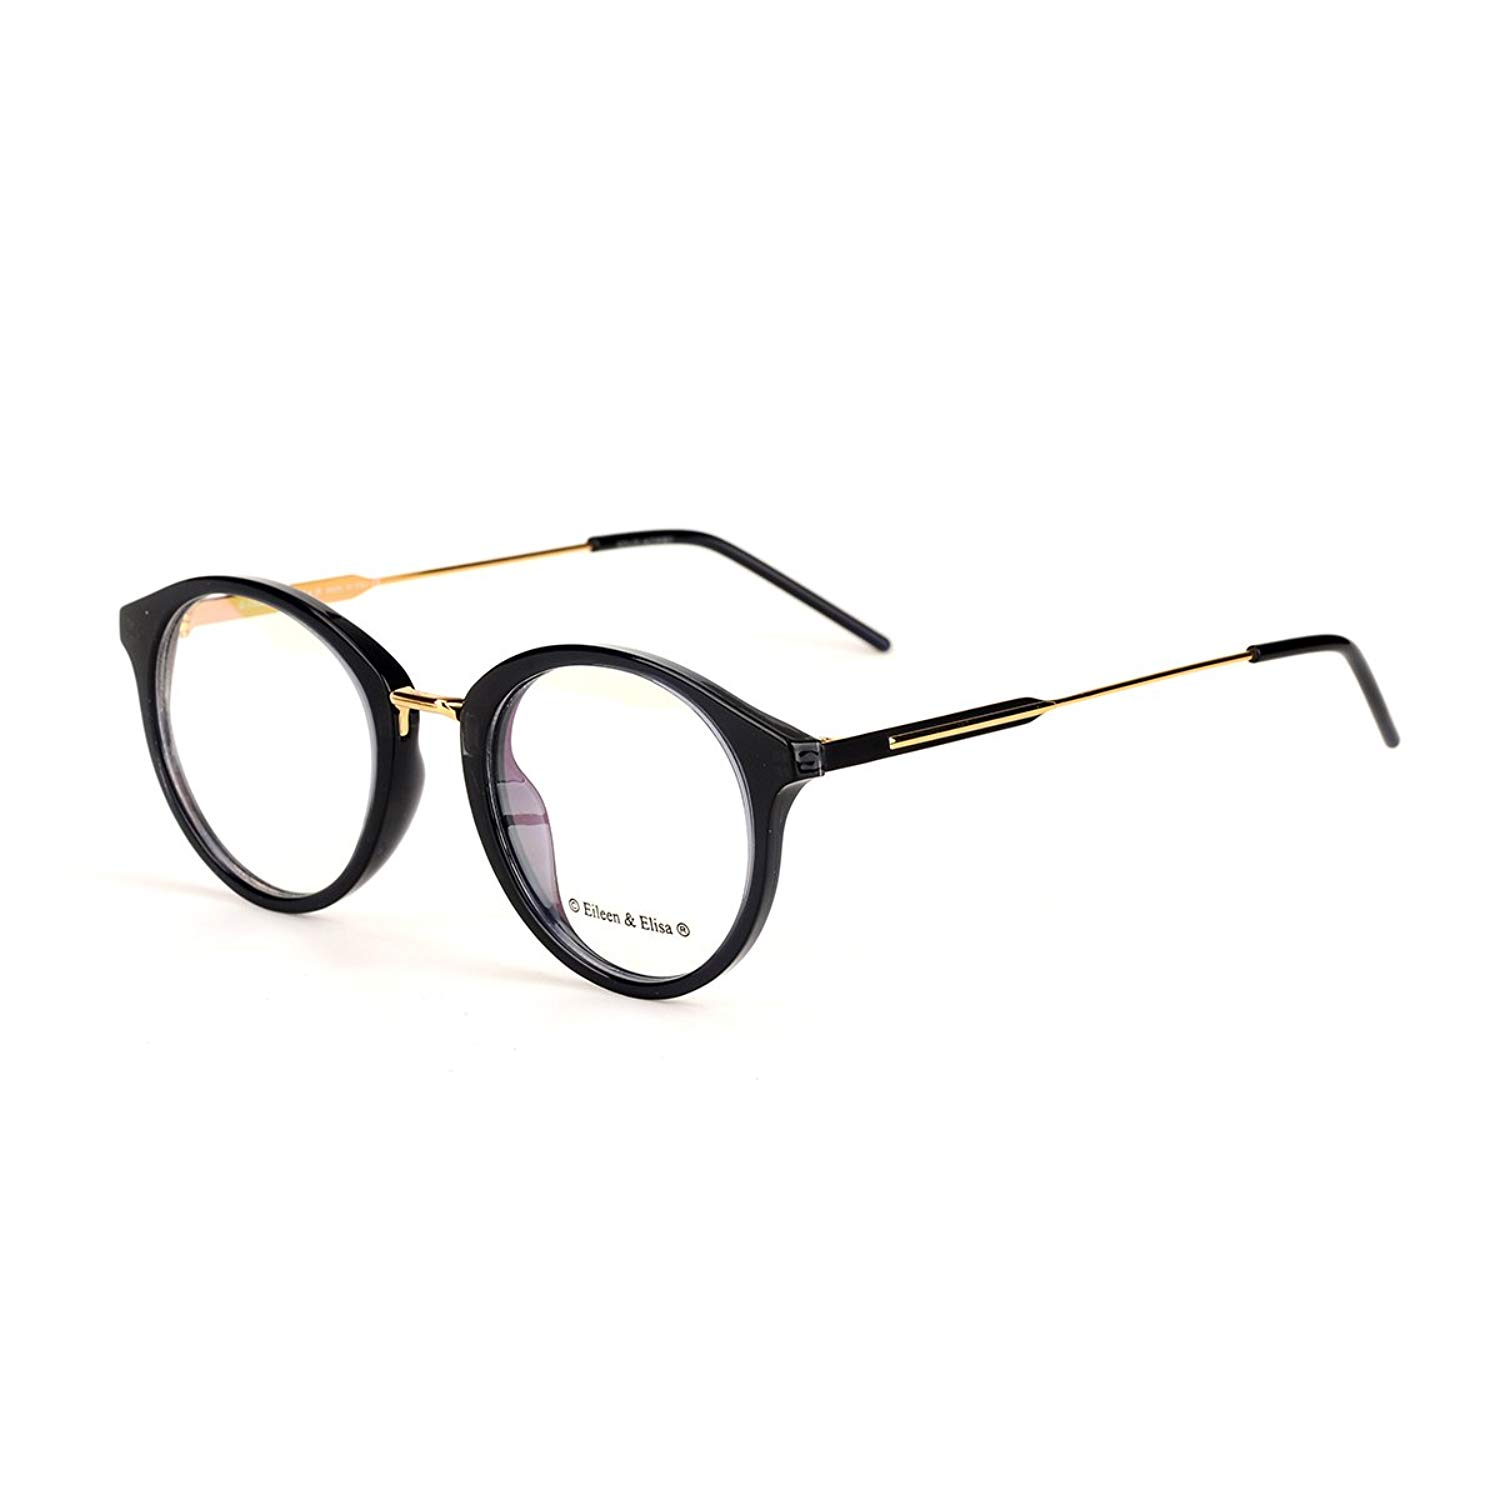 c82a2dd45dc Eileen Elisa Round Retro Glasses Frame Metal Clear Lens Reading Eyeglasses  with Case (Black Gold